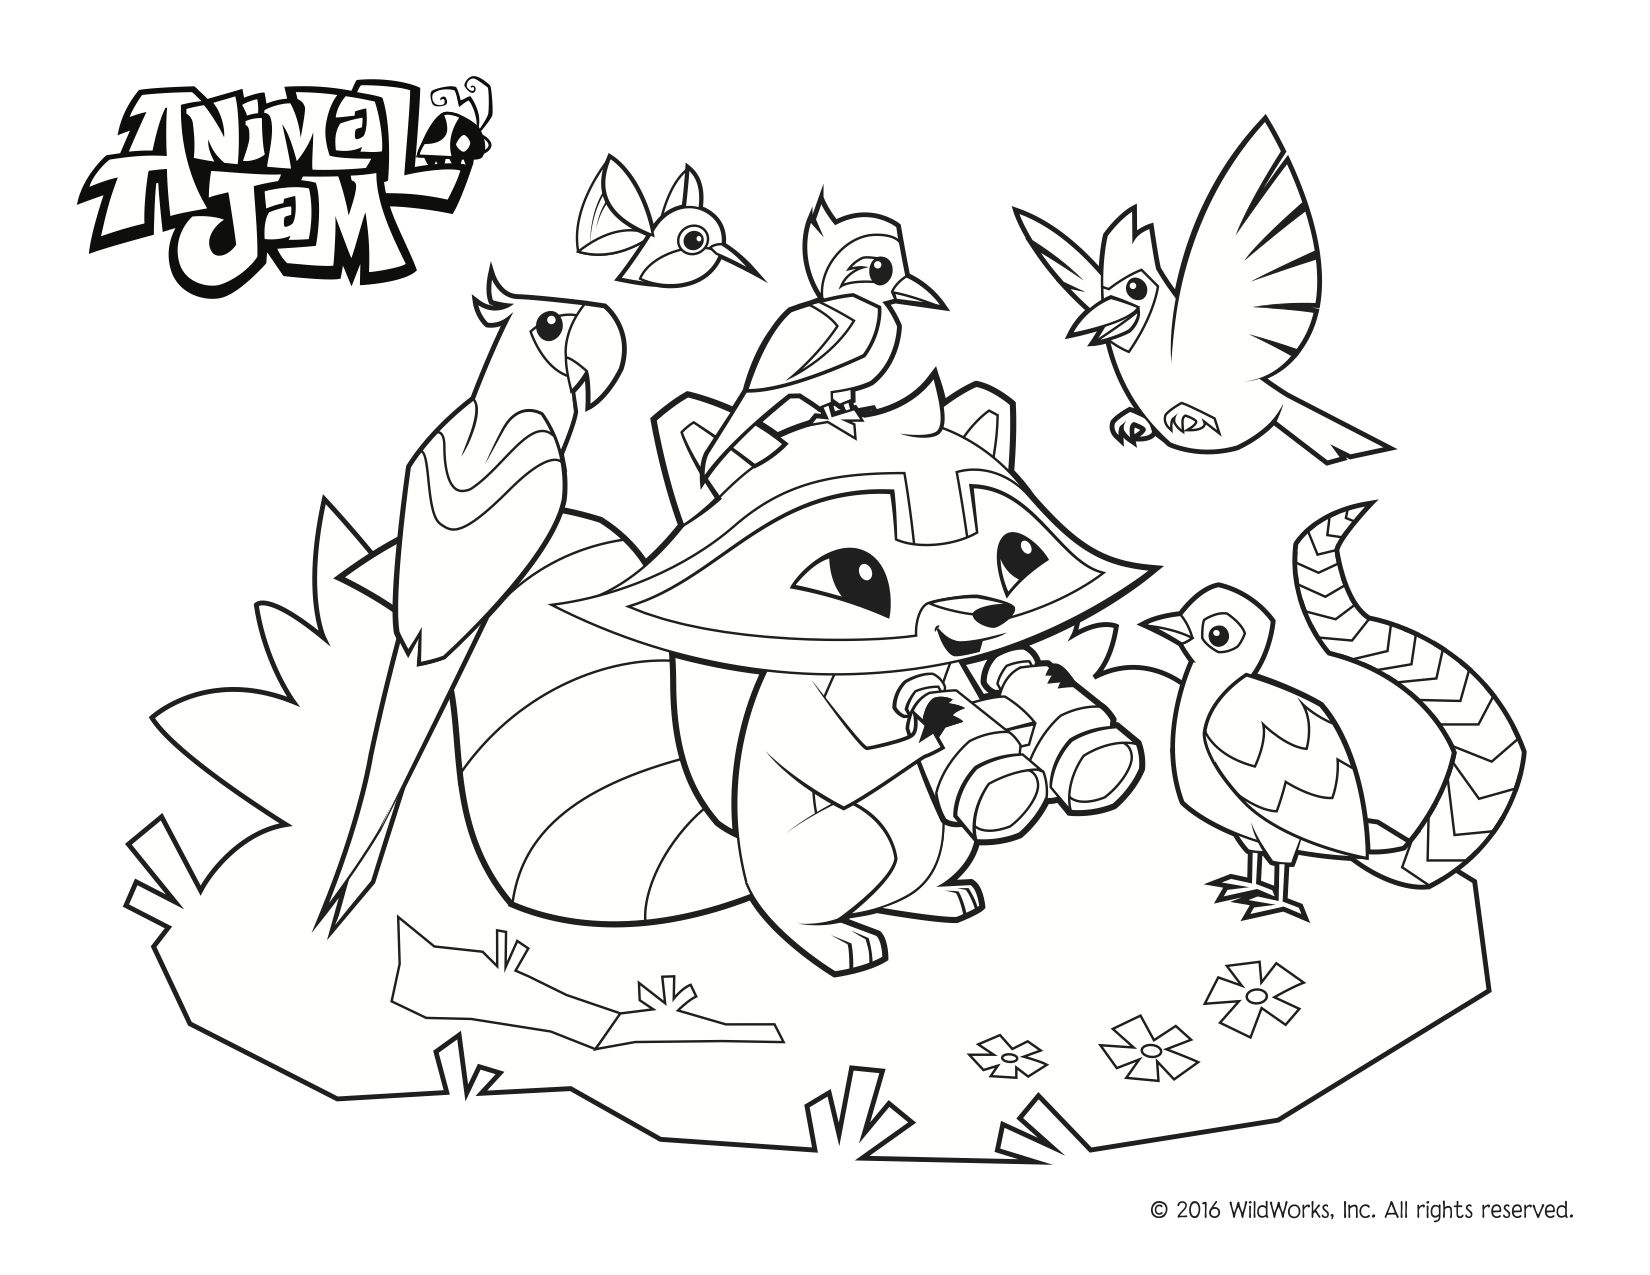 1650x1275 Expert Animal Jam Coloring Pages Snow Leopard